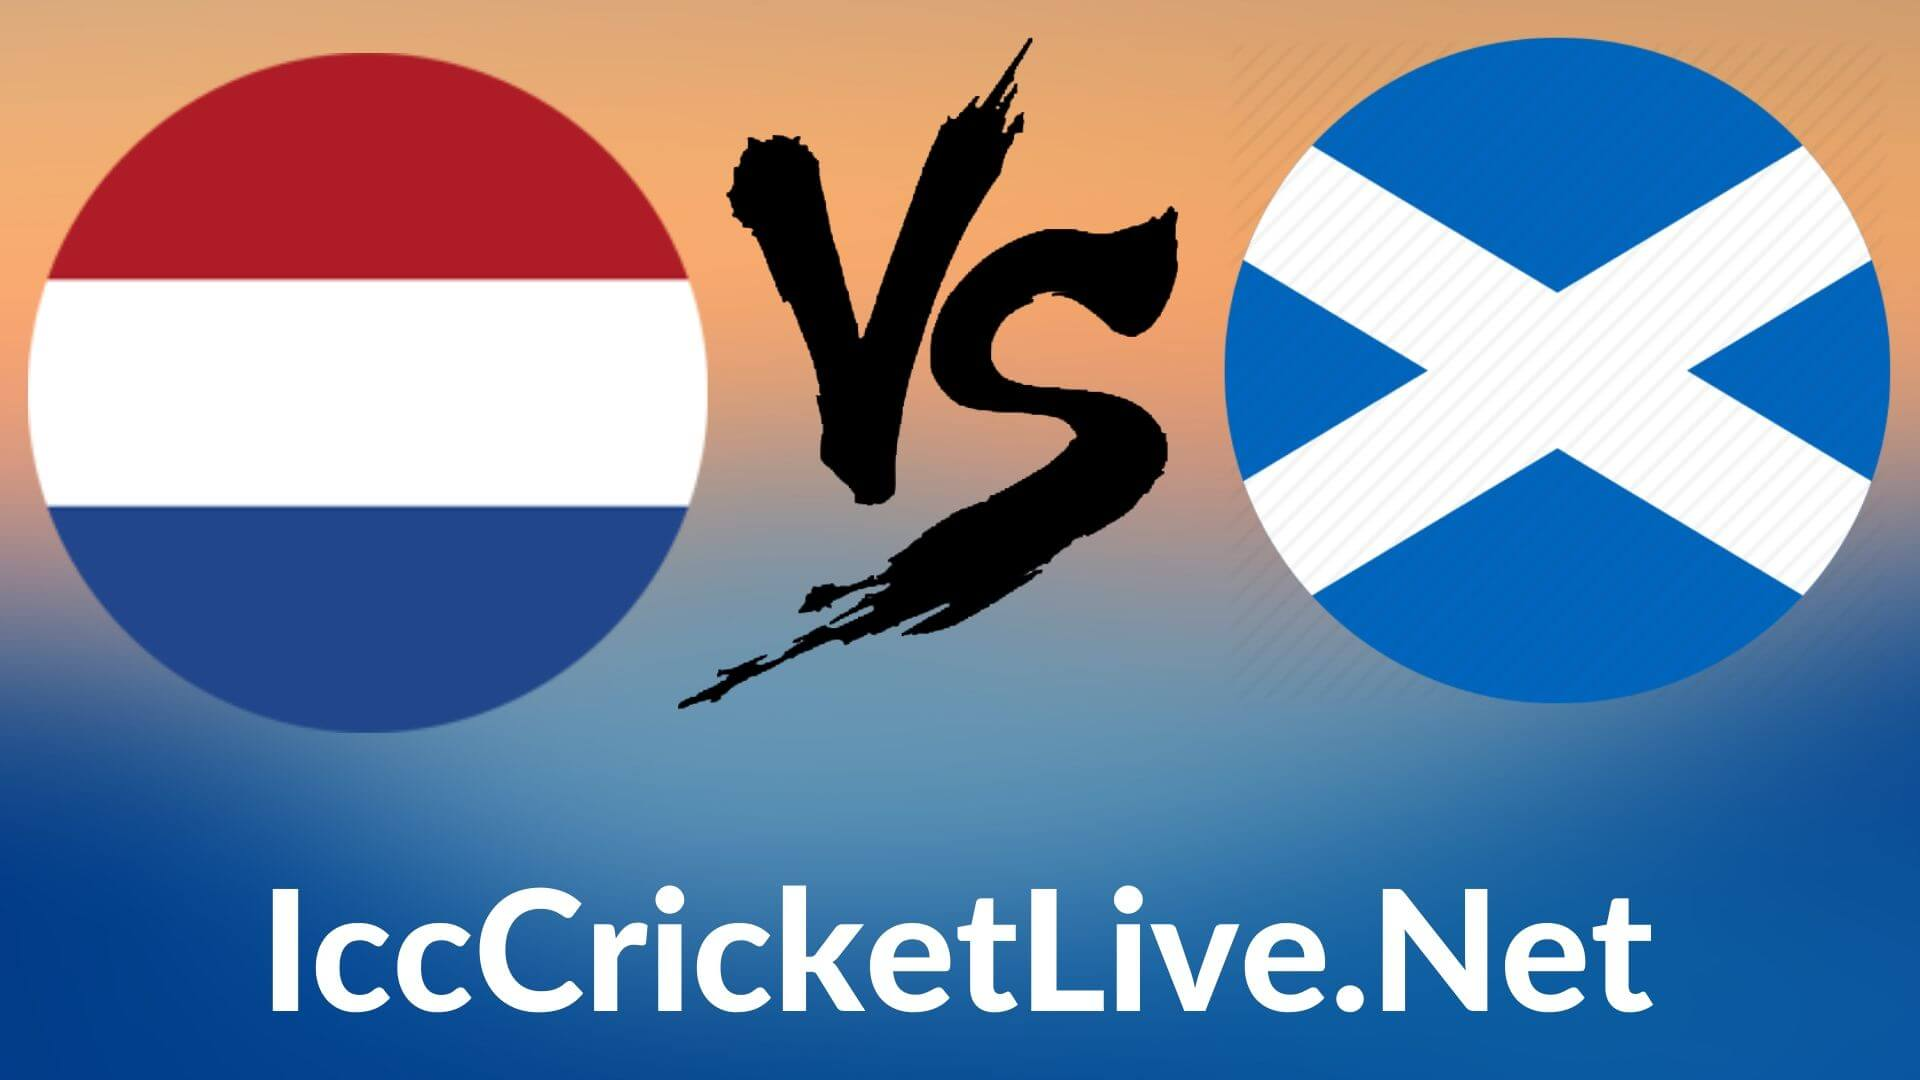 Netherland Vs Scotland Live 2020 | T20 WC 4th Match, First Round Group B